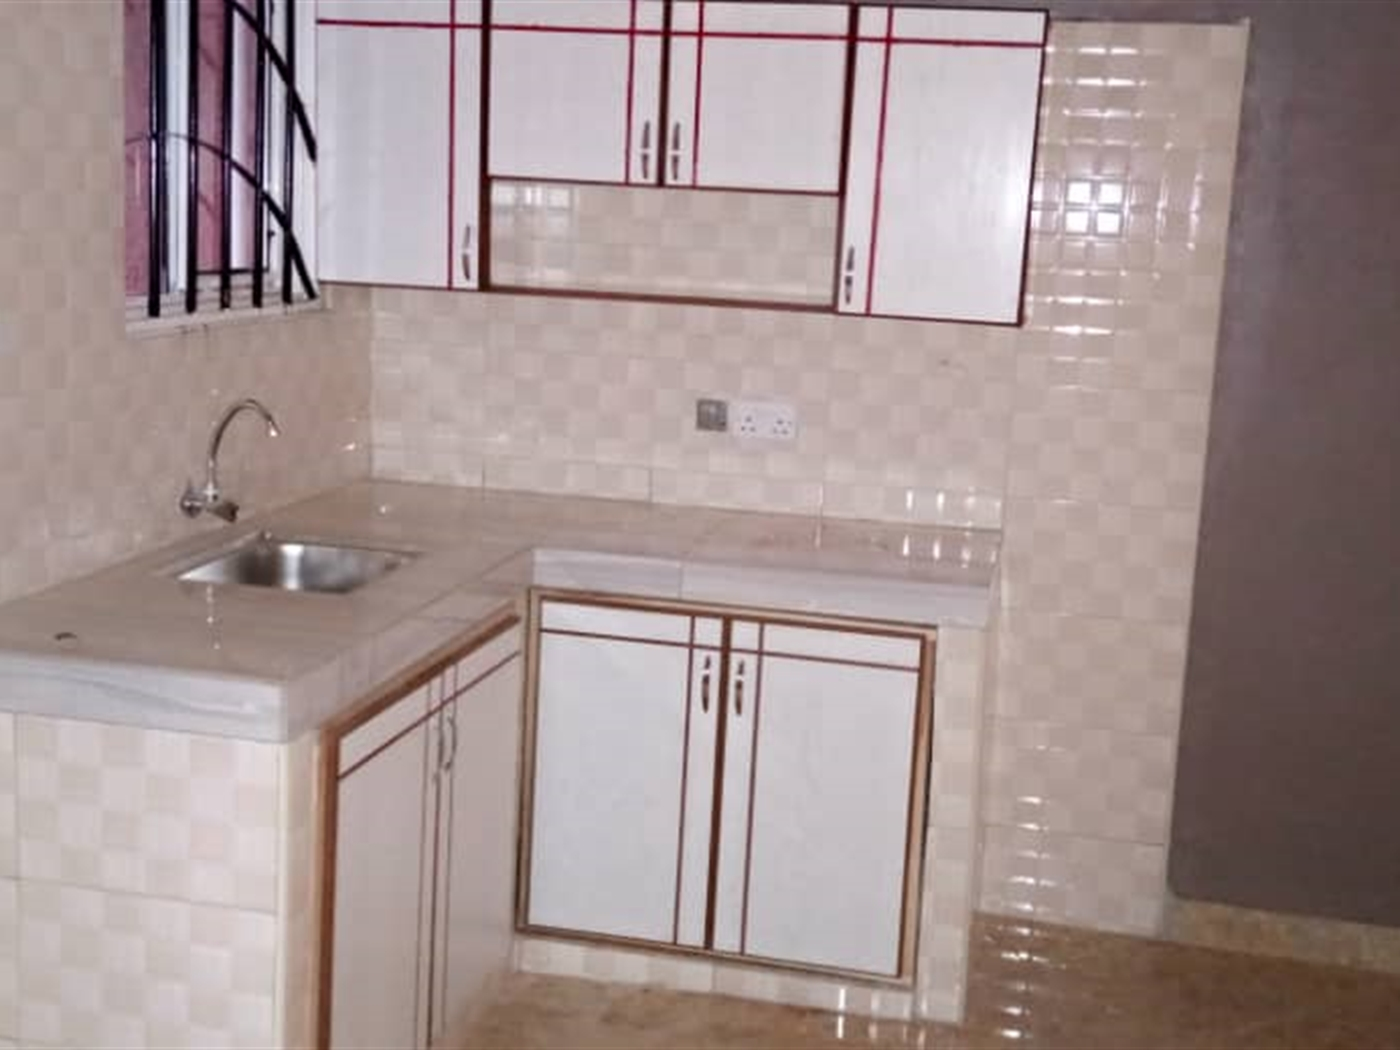 Rental units for sale in Kisasi Kampala